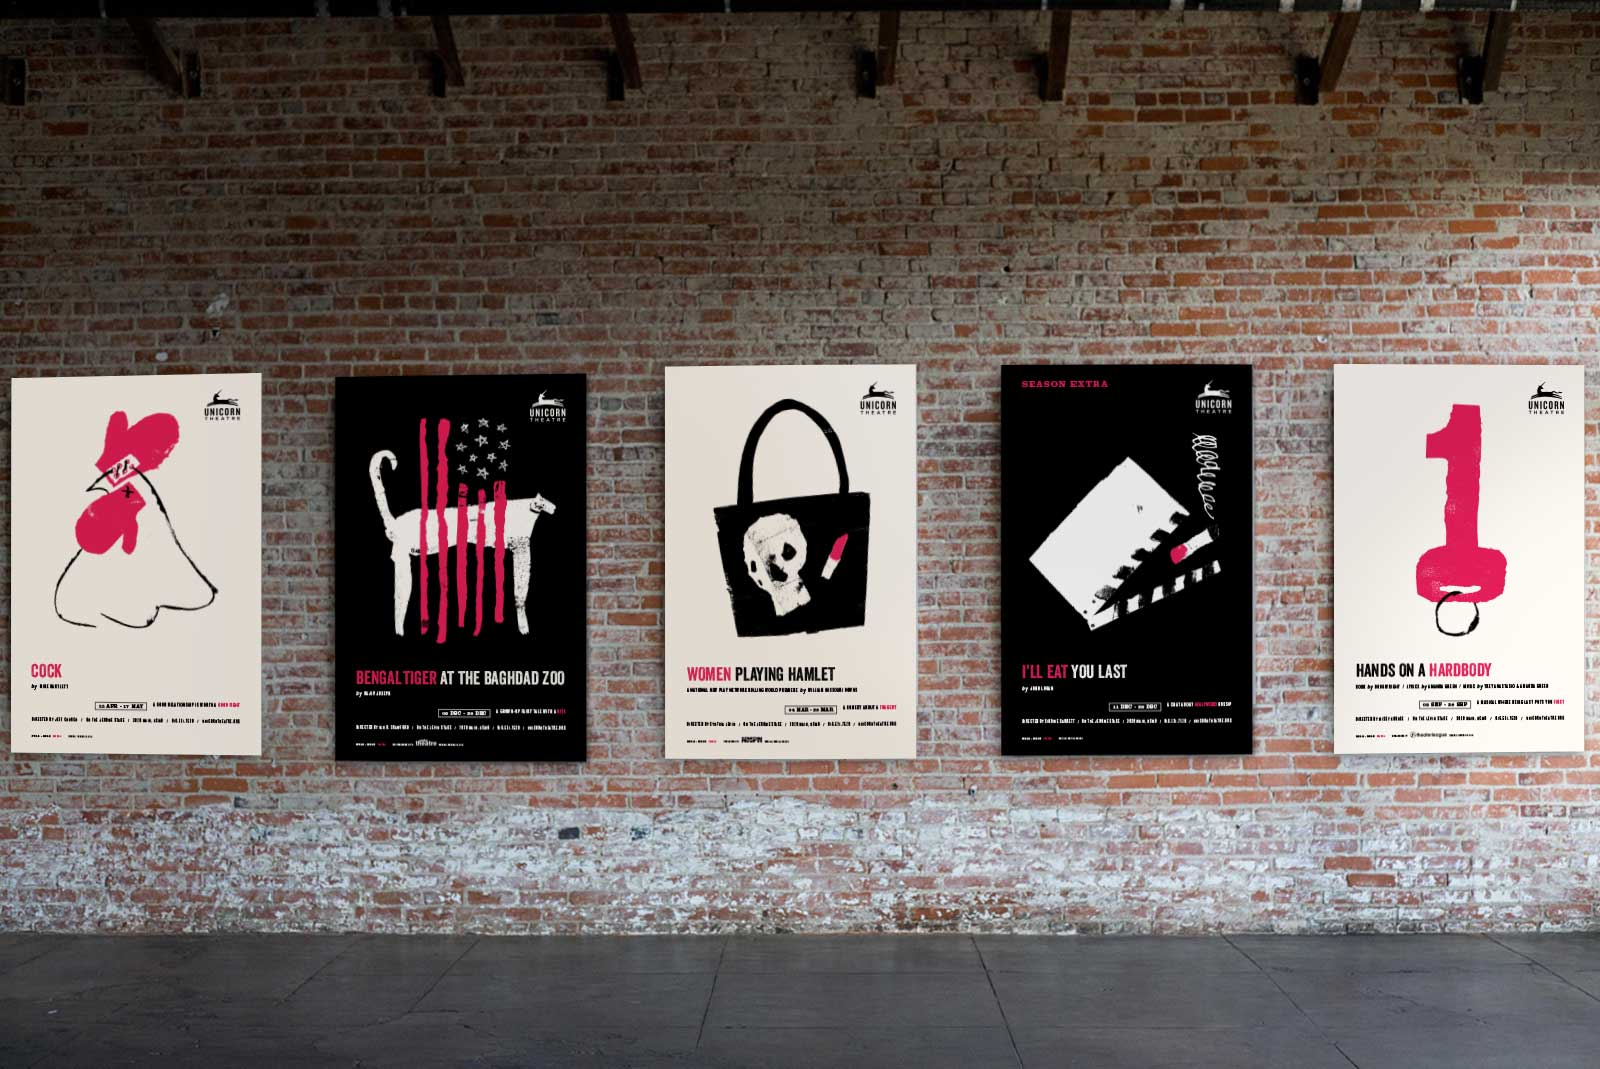 Poster design competition 2015 - 9_lg